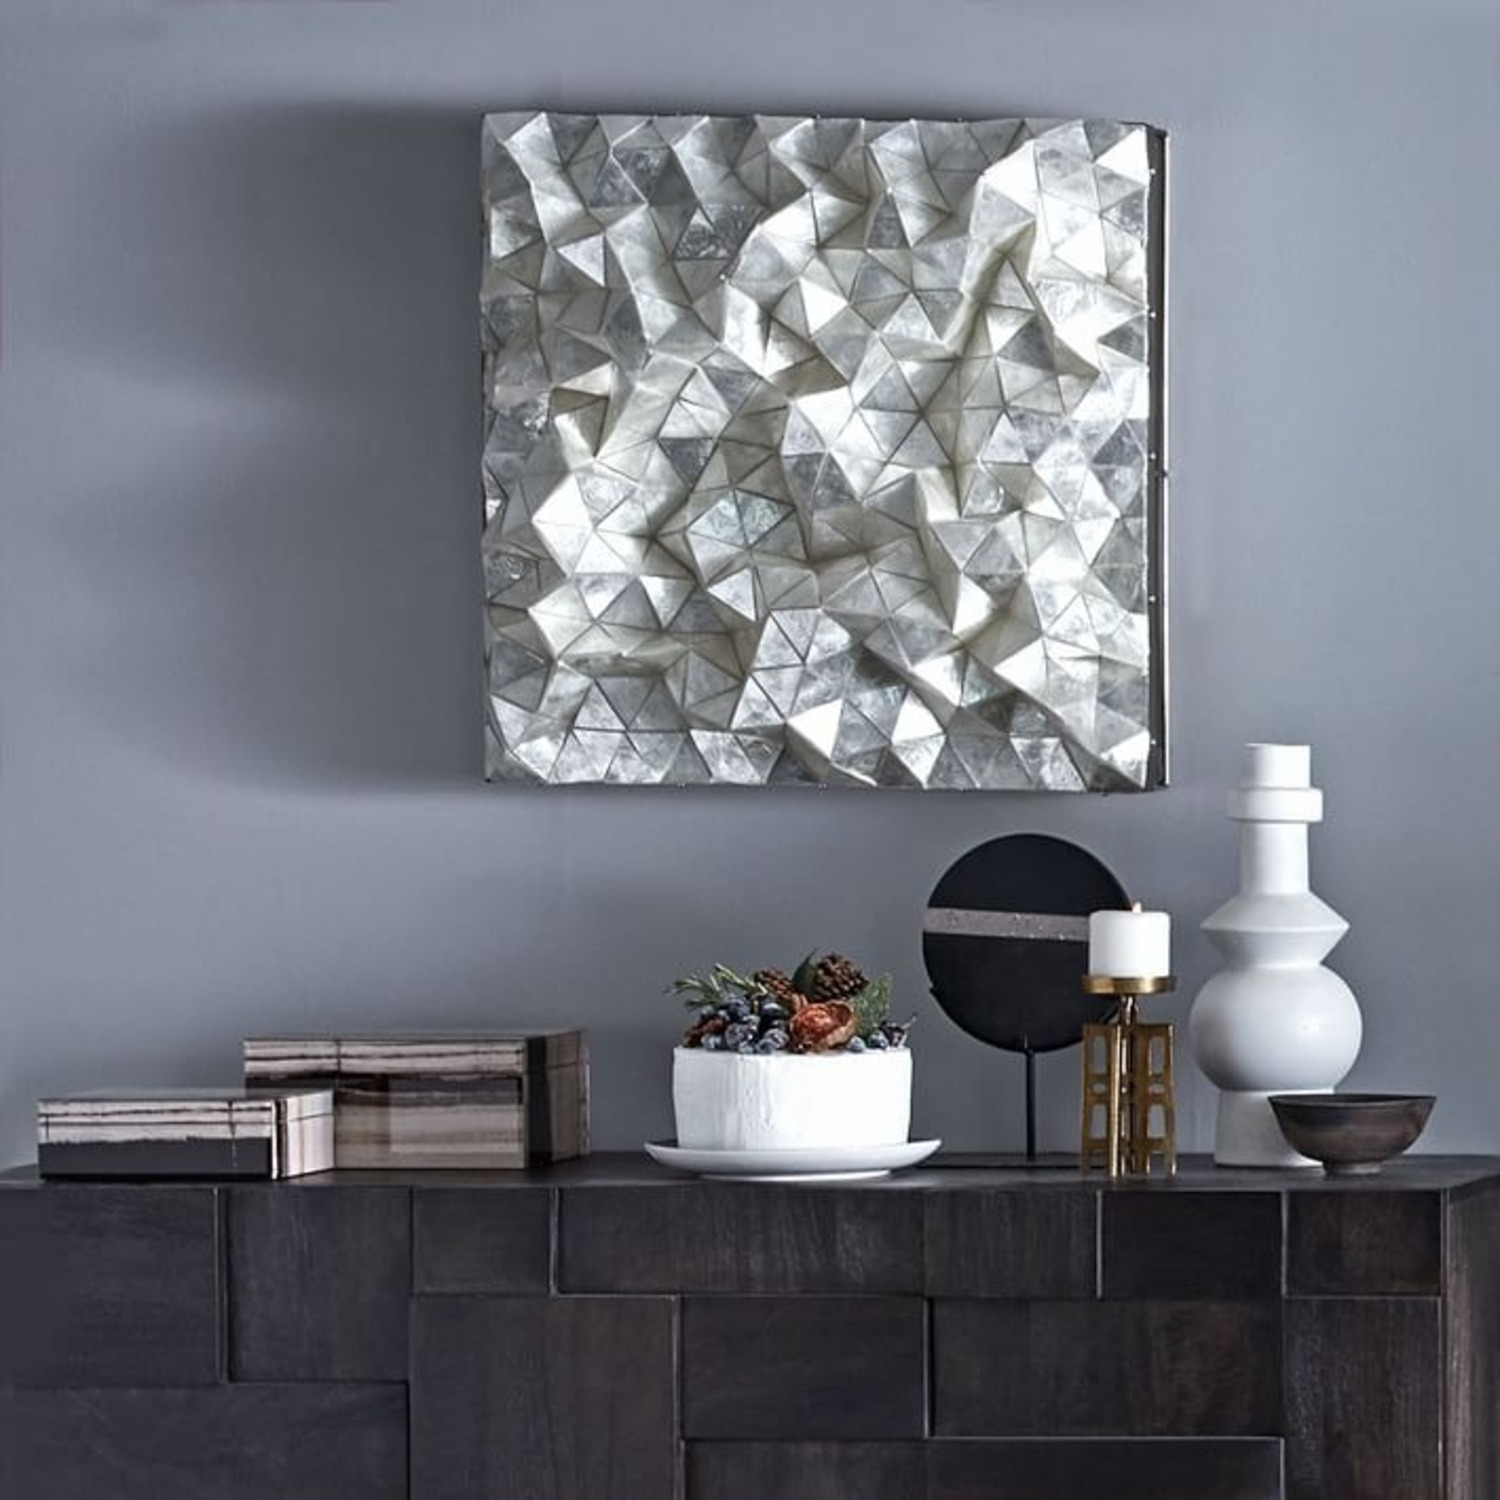 West Elm Capiz Wall Art, Faceted Square - image-1